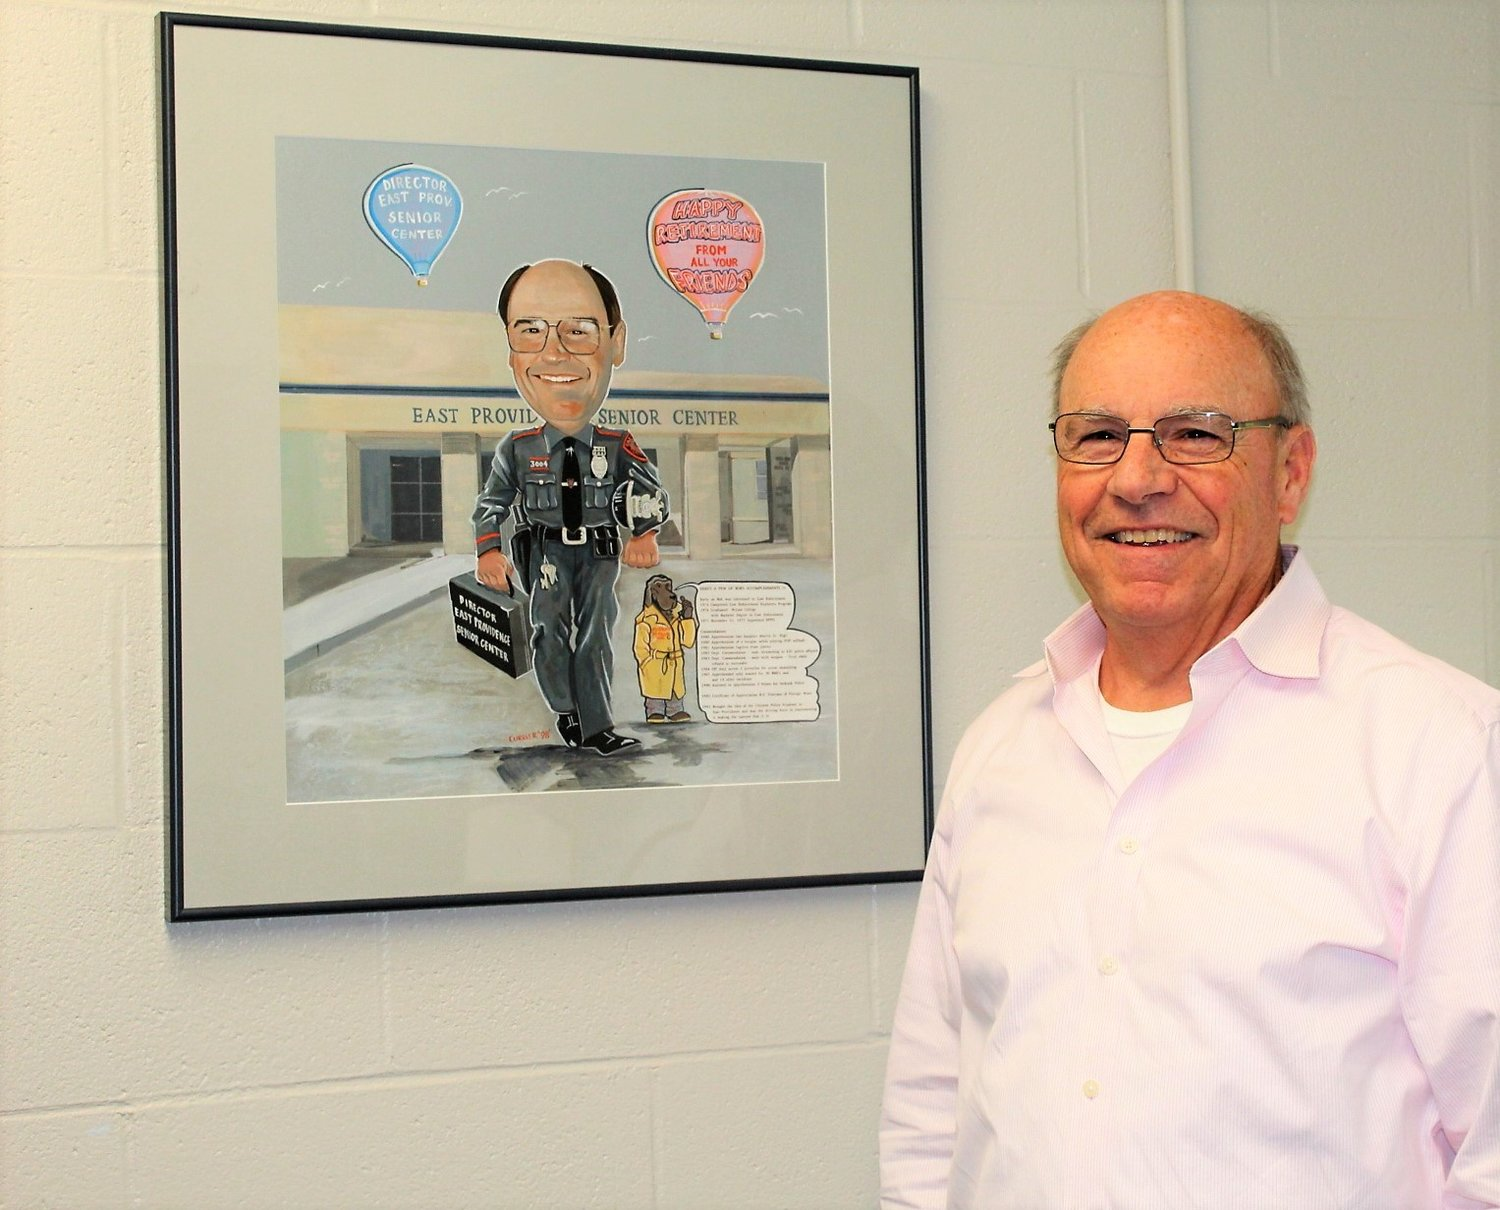 Bob Rock Senior Center Director